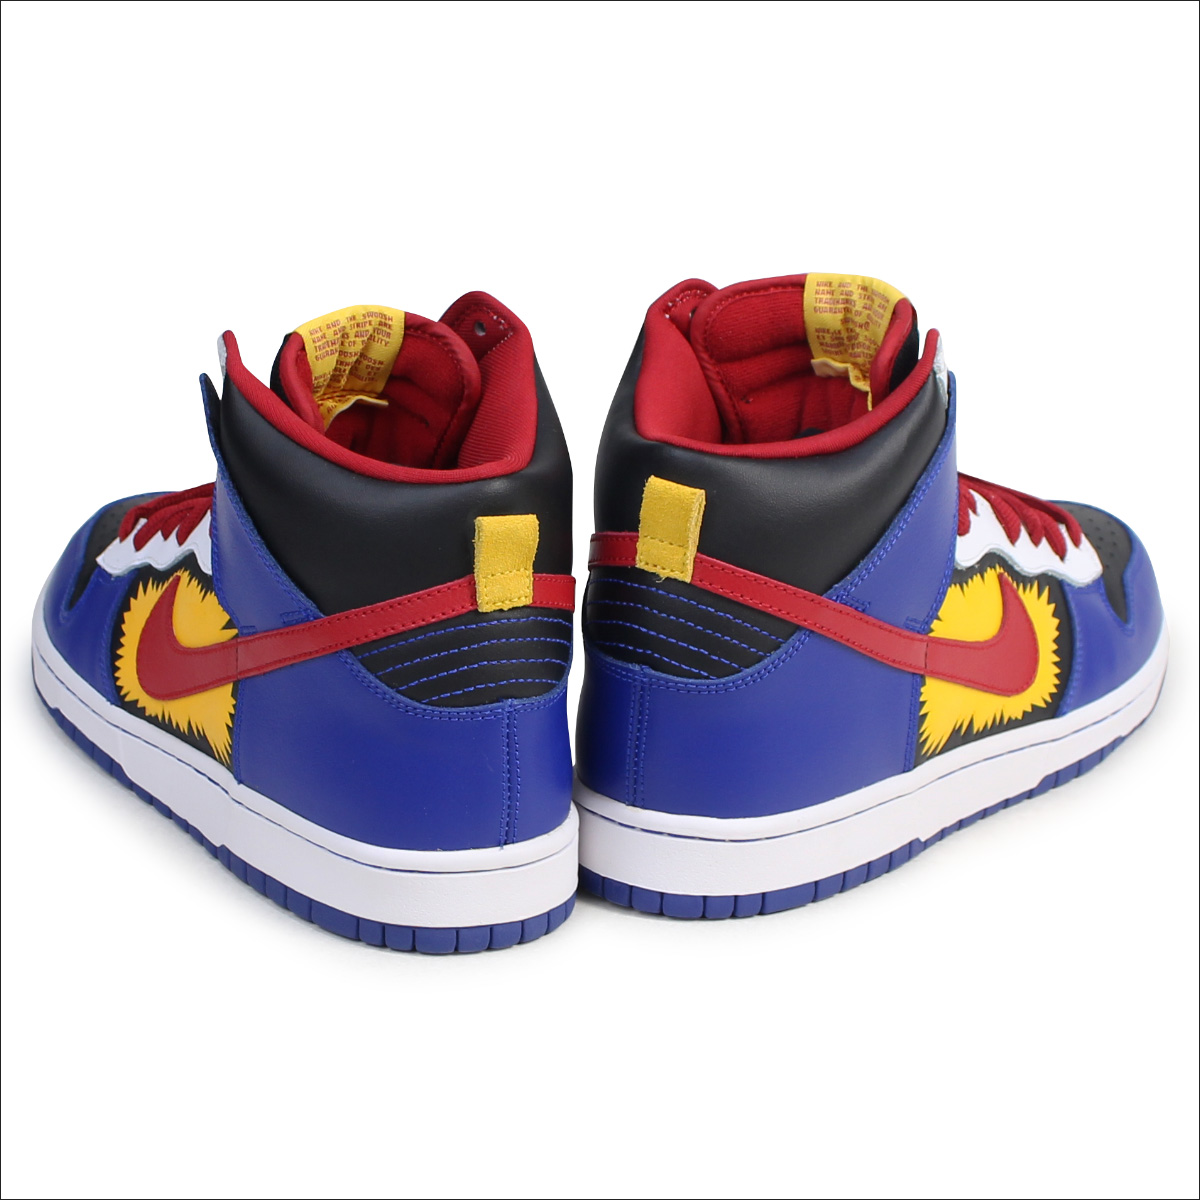 finest selection 61098 e0bc7 ... real nike nike dunk high sneakers nike dunk high pro sb 305050 064 boom  men shoes